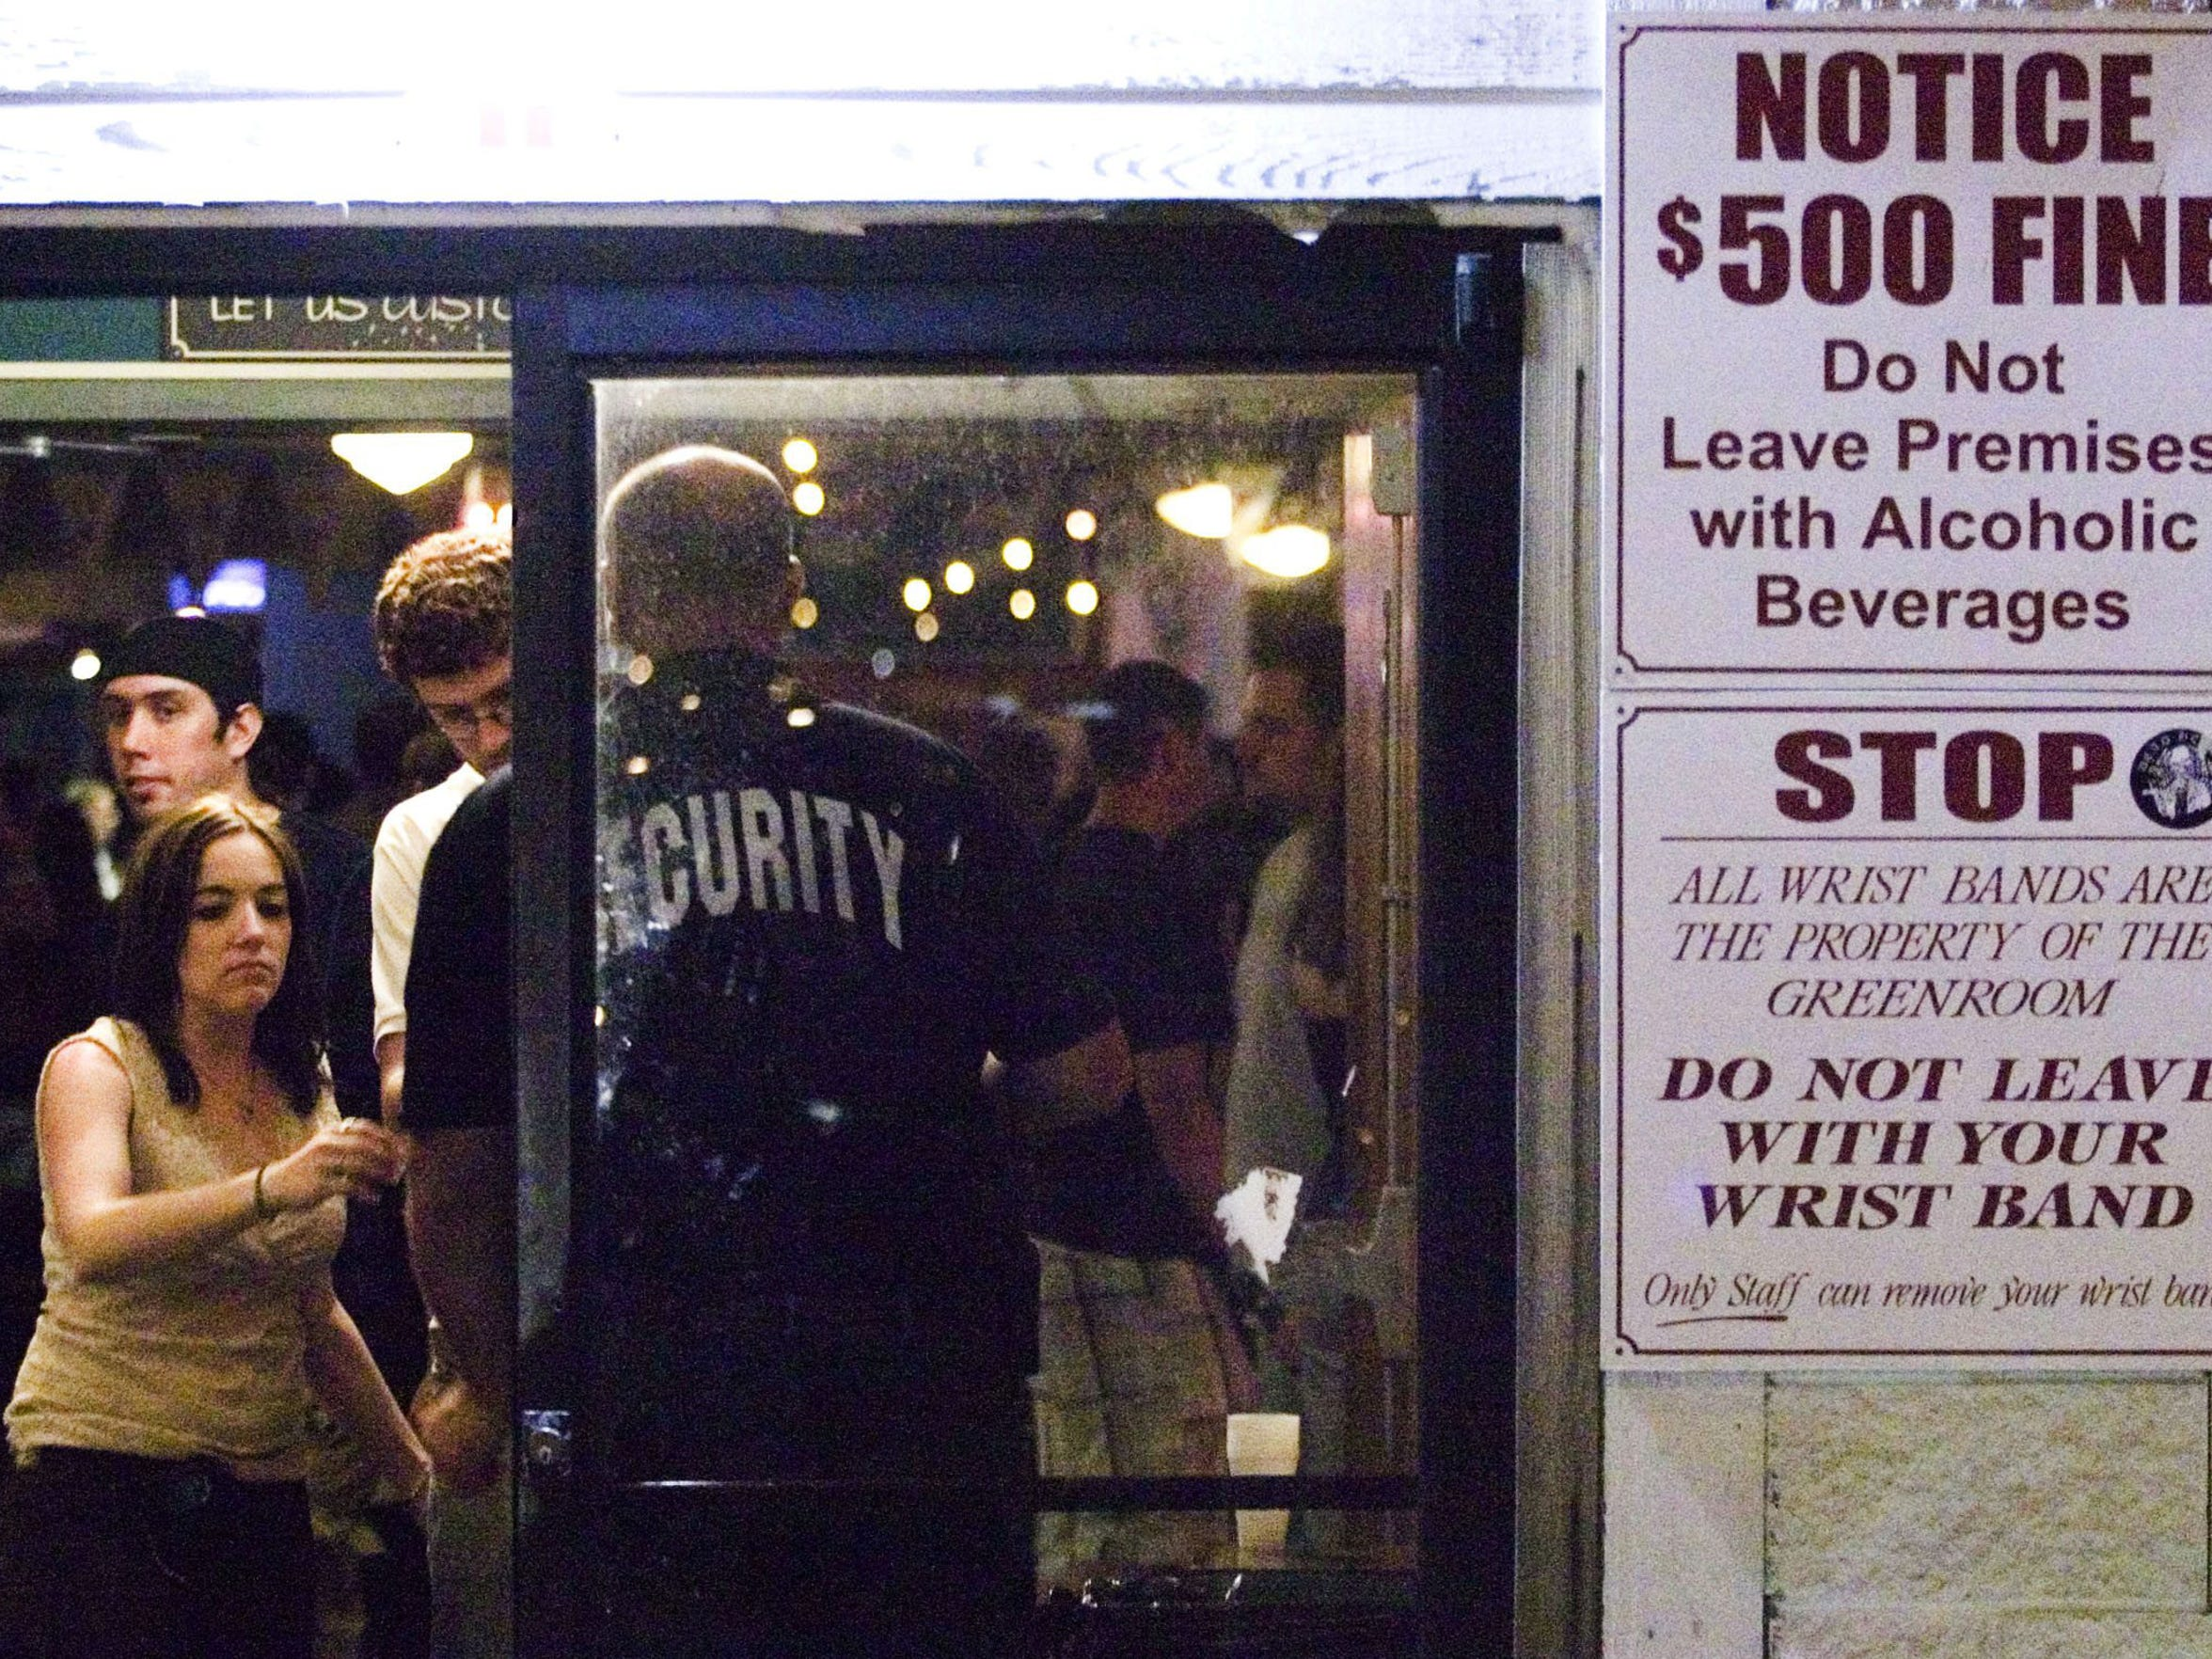 A doorman collects wristbands from Sawmill Cafe patrons in this file photo.